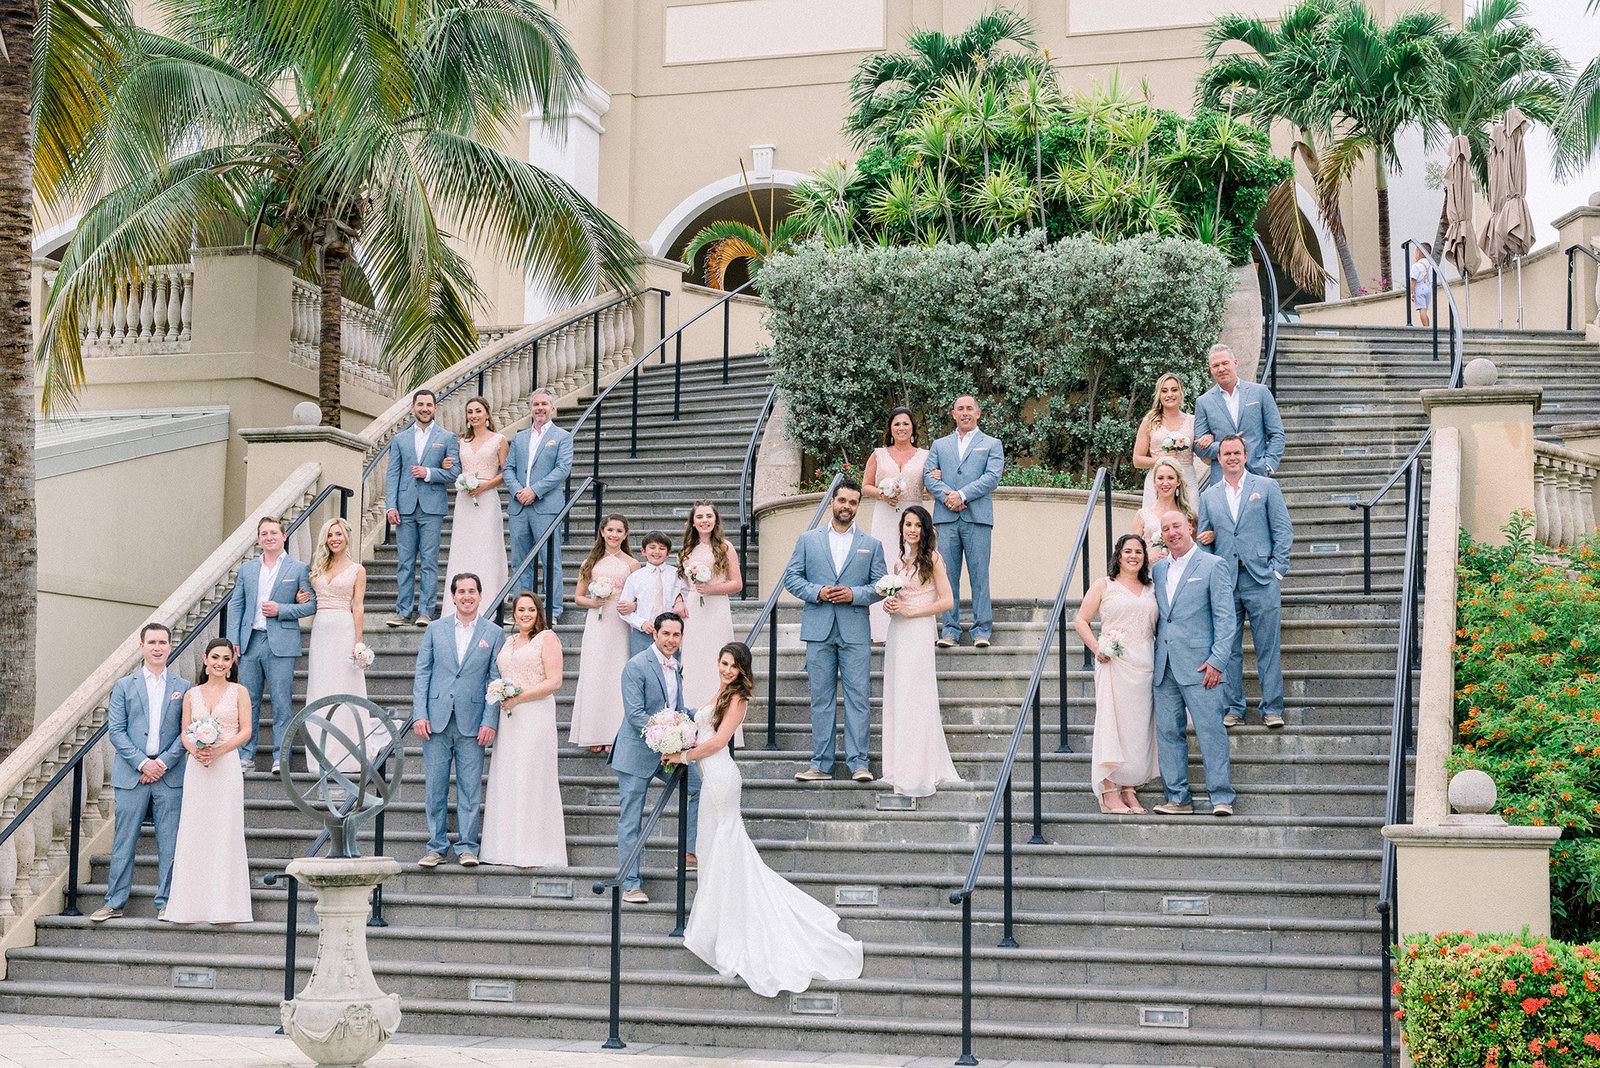 20180512-Pura-Soul-Photo-Ritz-Grand-Cayman-Wedding-53